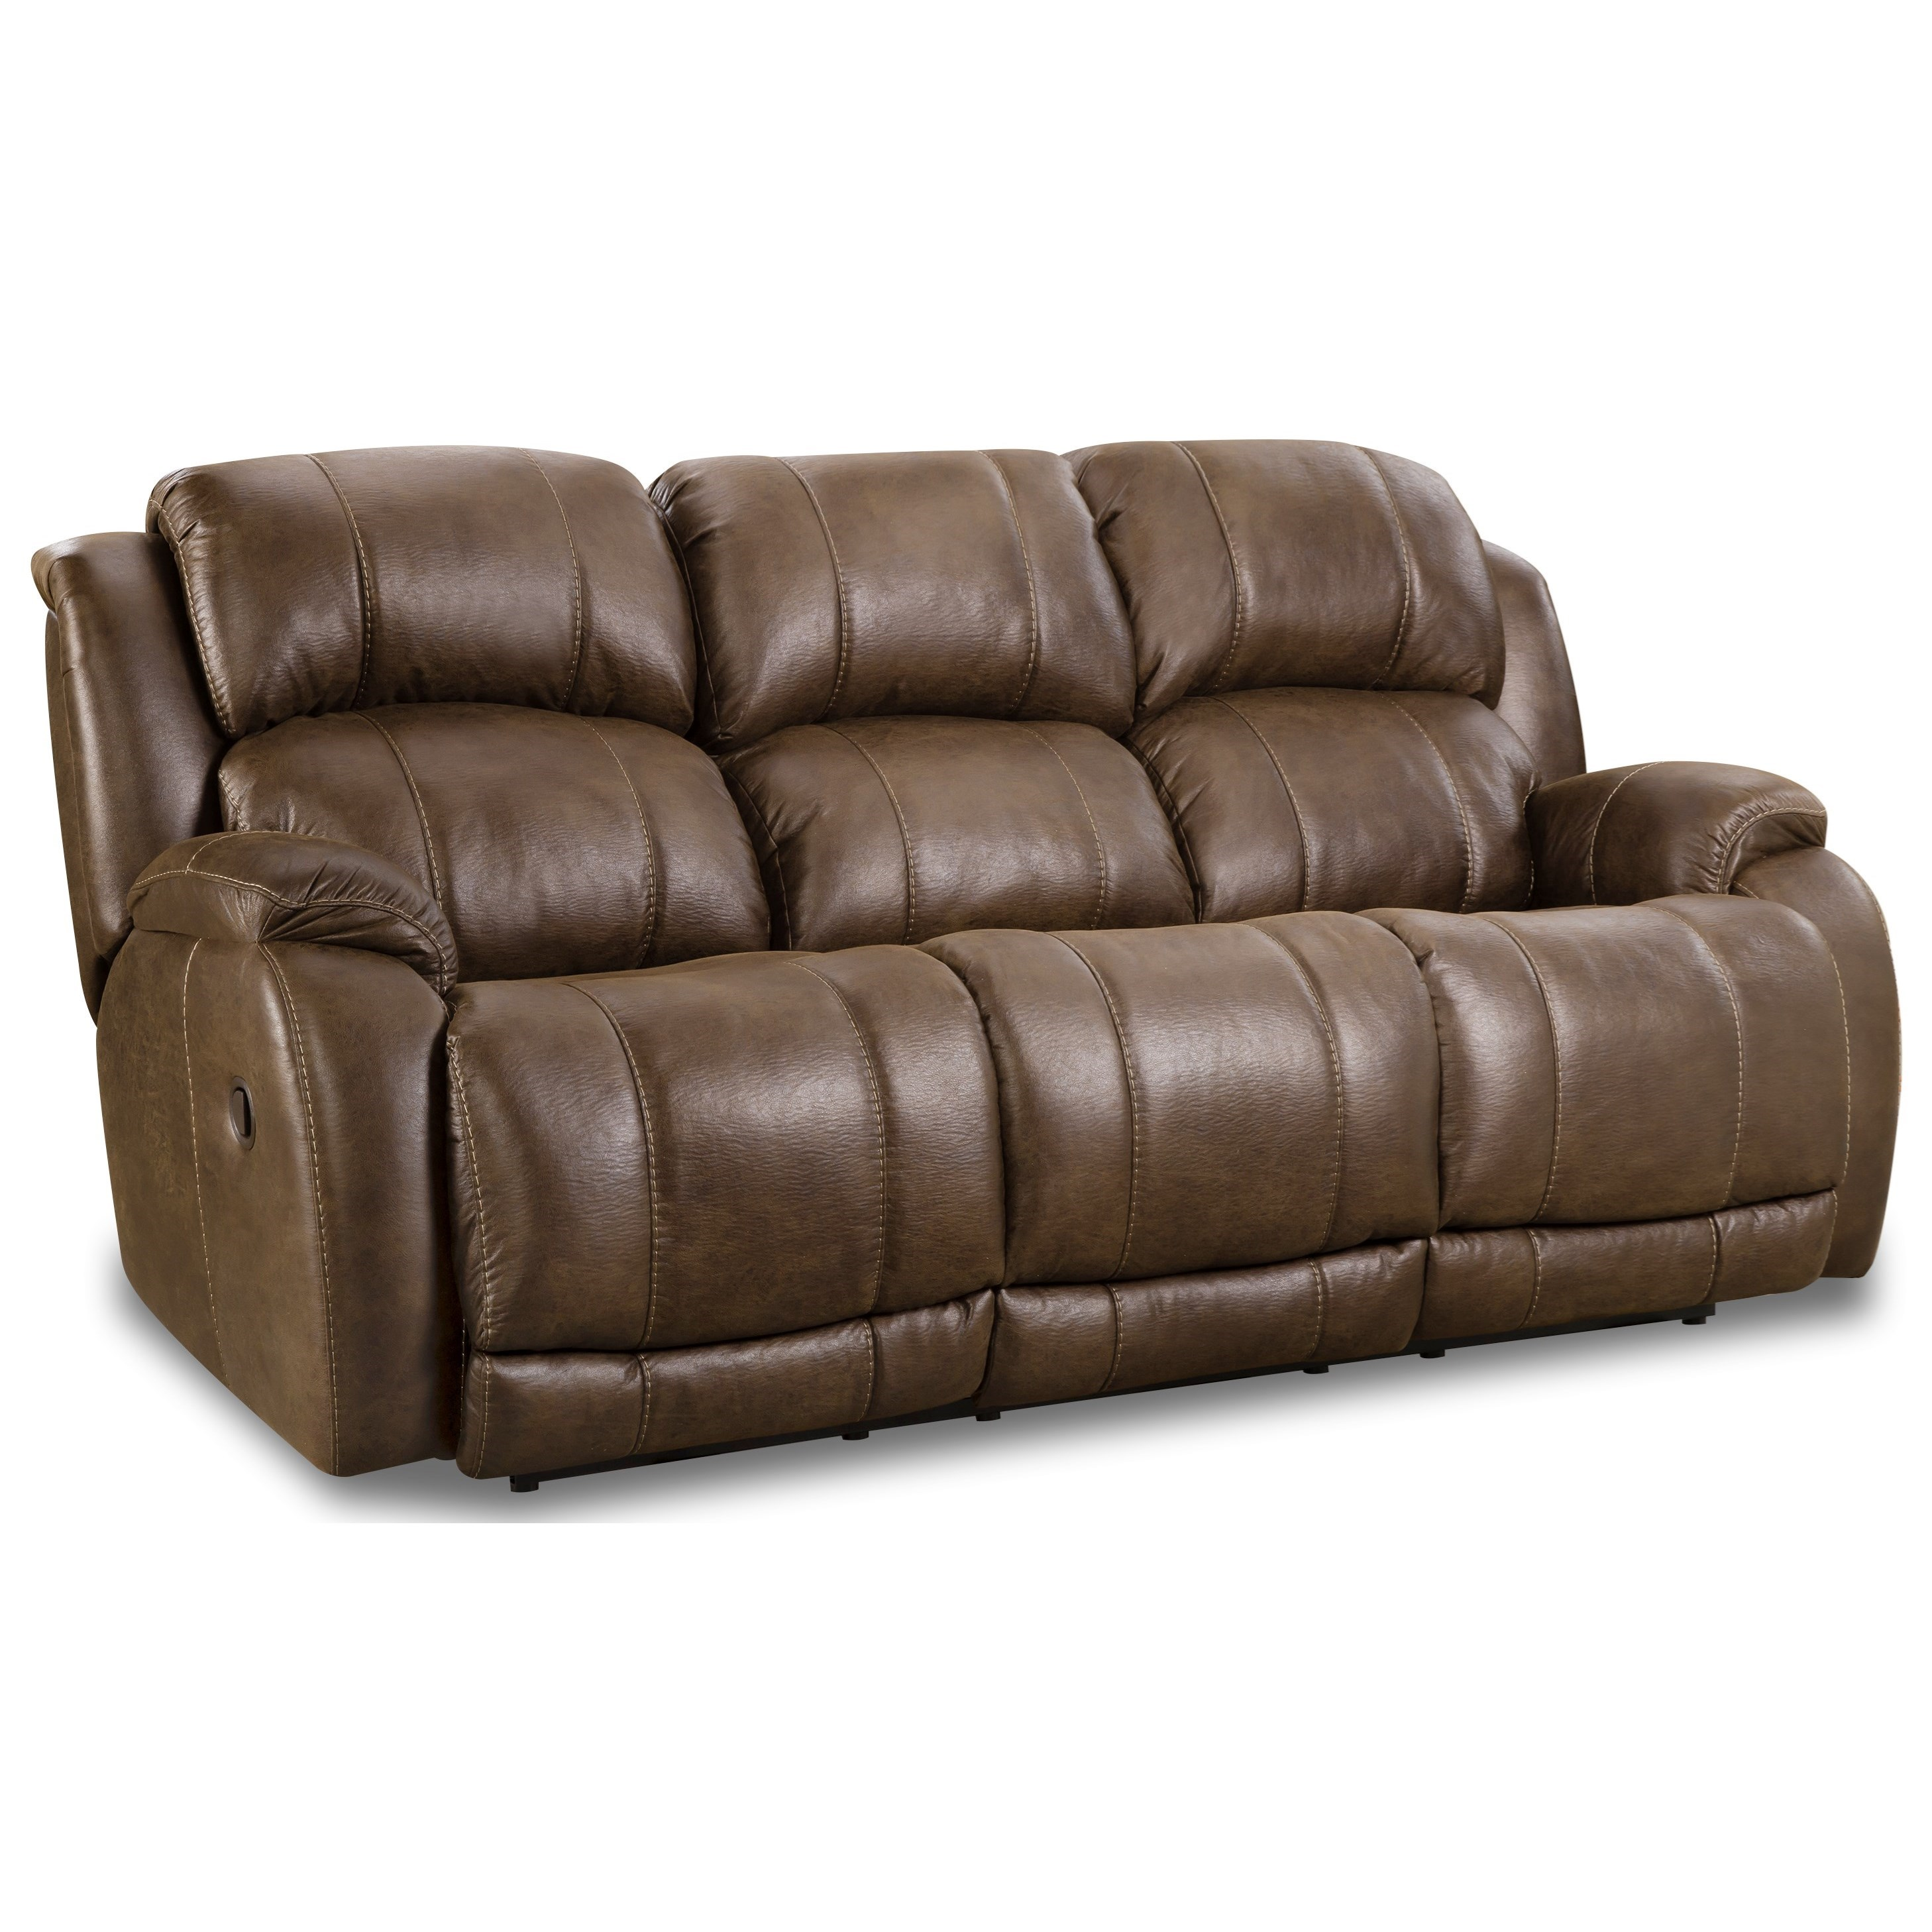 Denali Dual Power Reclining Sofa by HomeStretch at Rife's Home Furniture